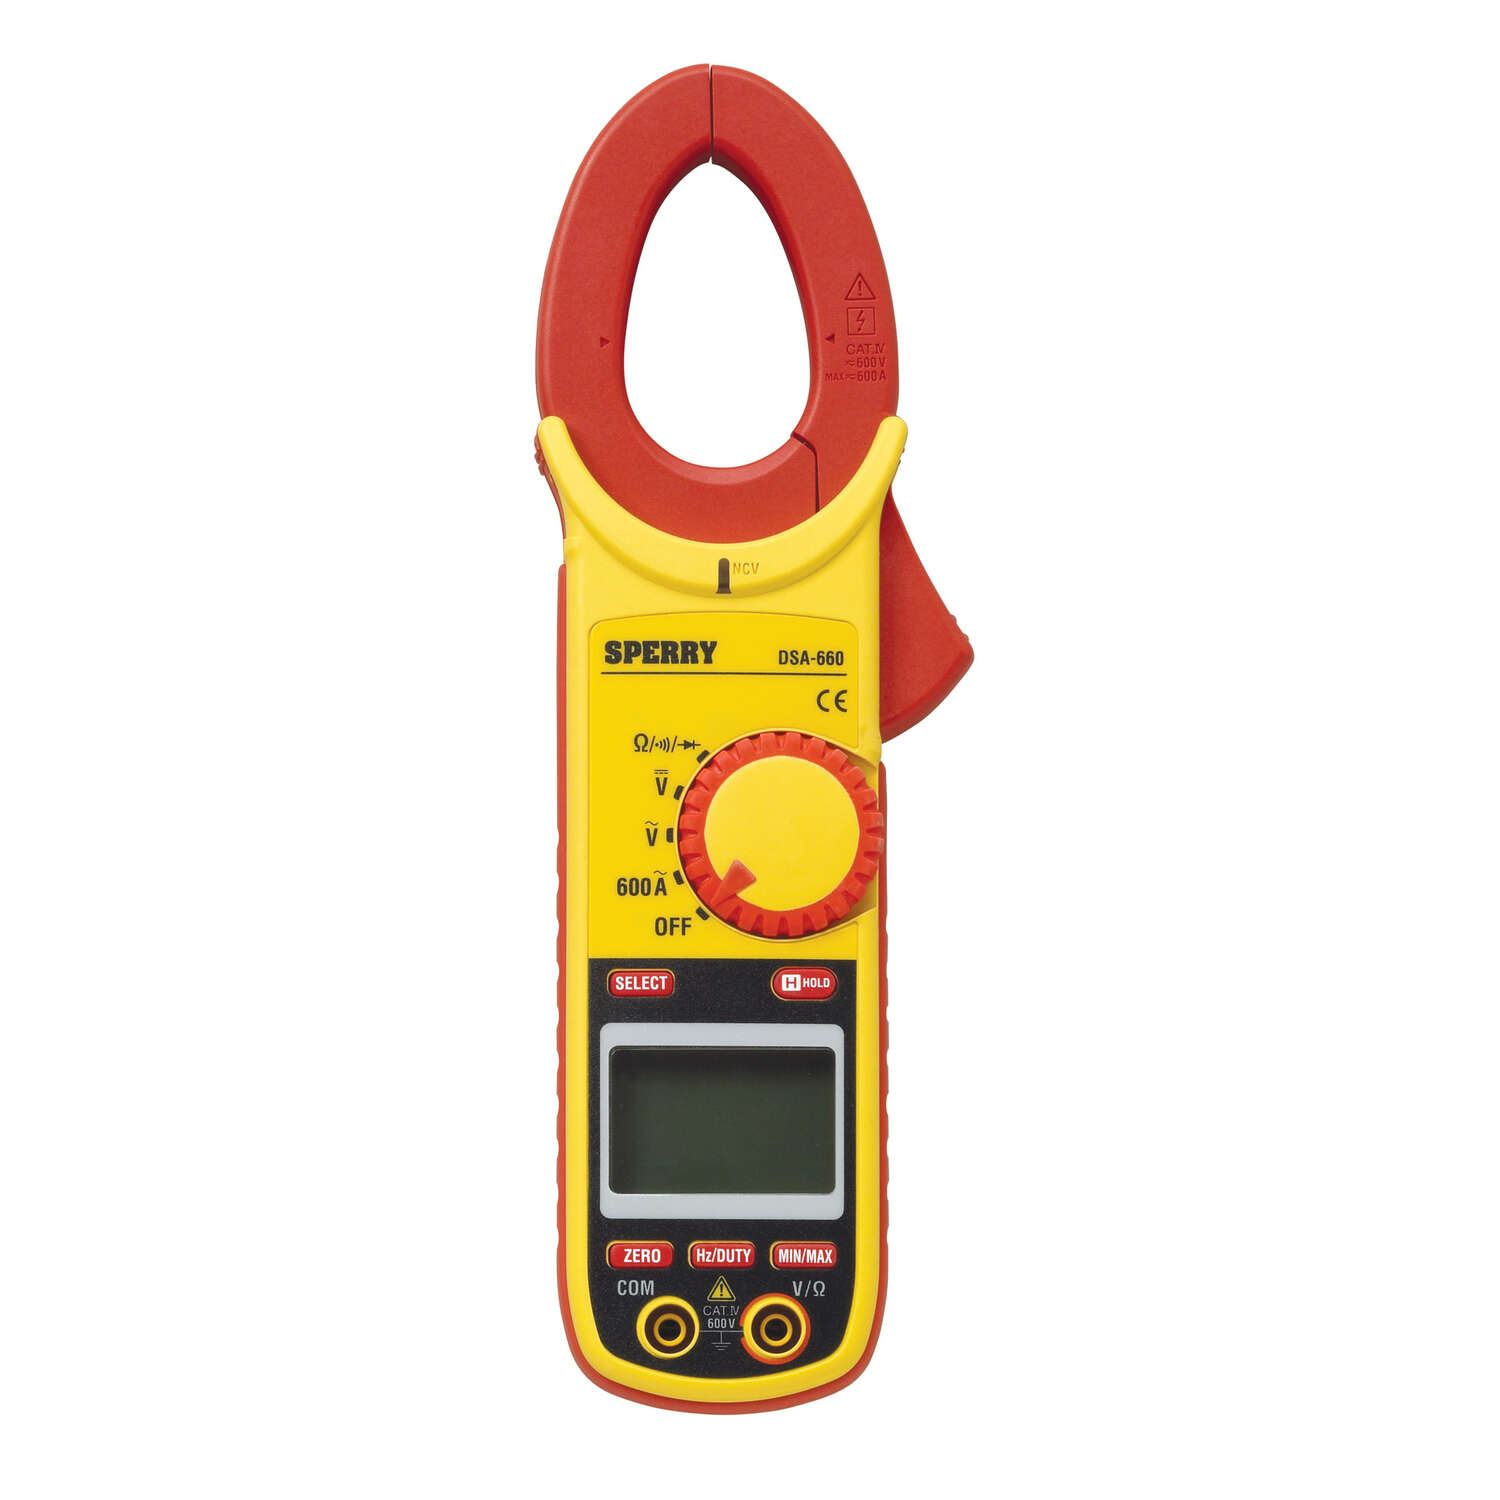 Sperry  600A  LCD  Clamp-On Meter